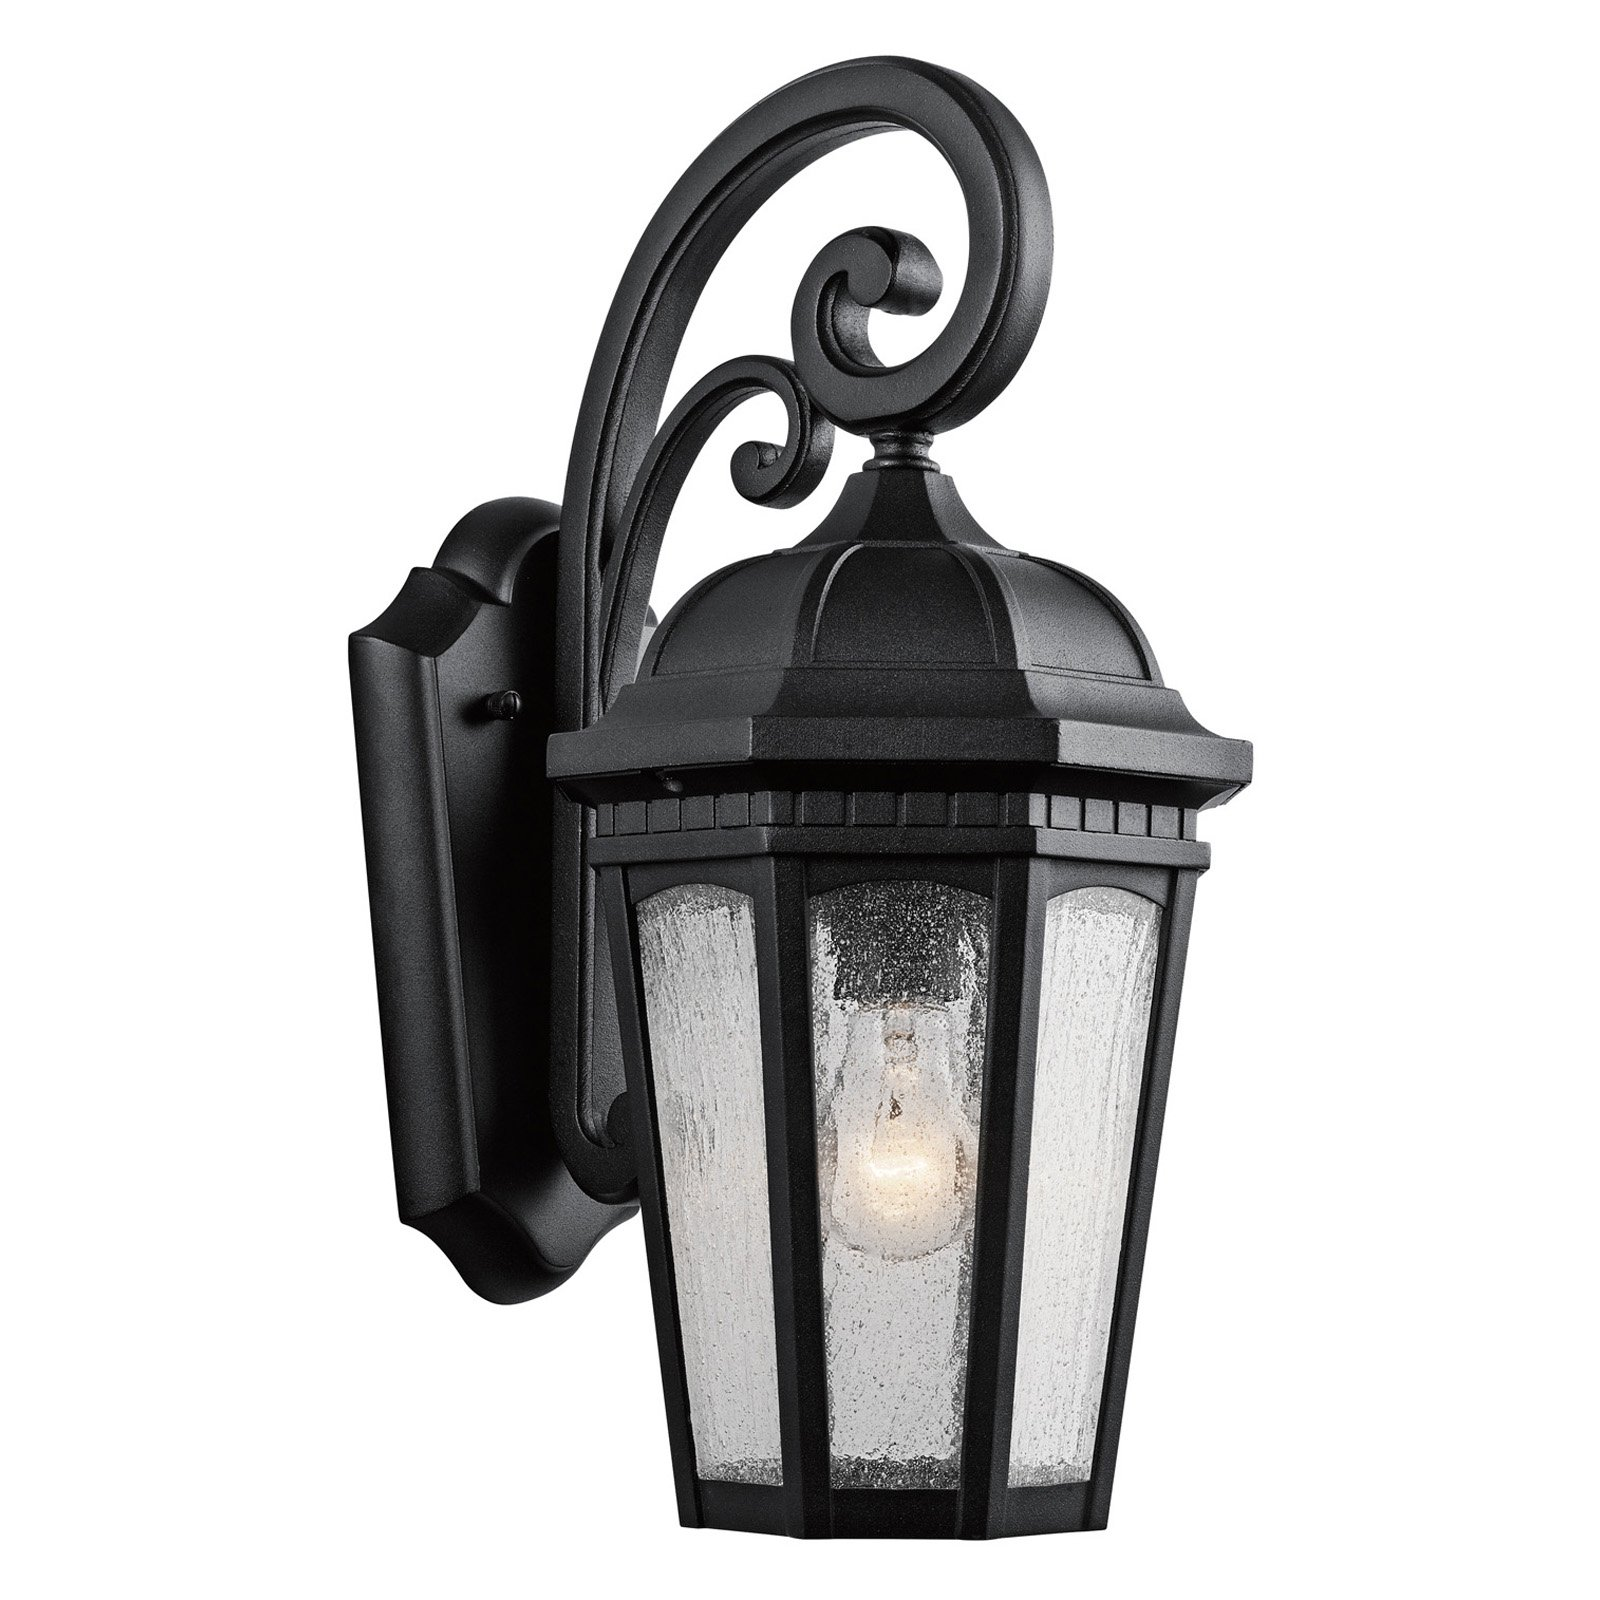 Kichler Courtyard 903 Outdoor Wall Lantern - Rubbed Bronze